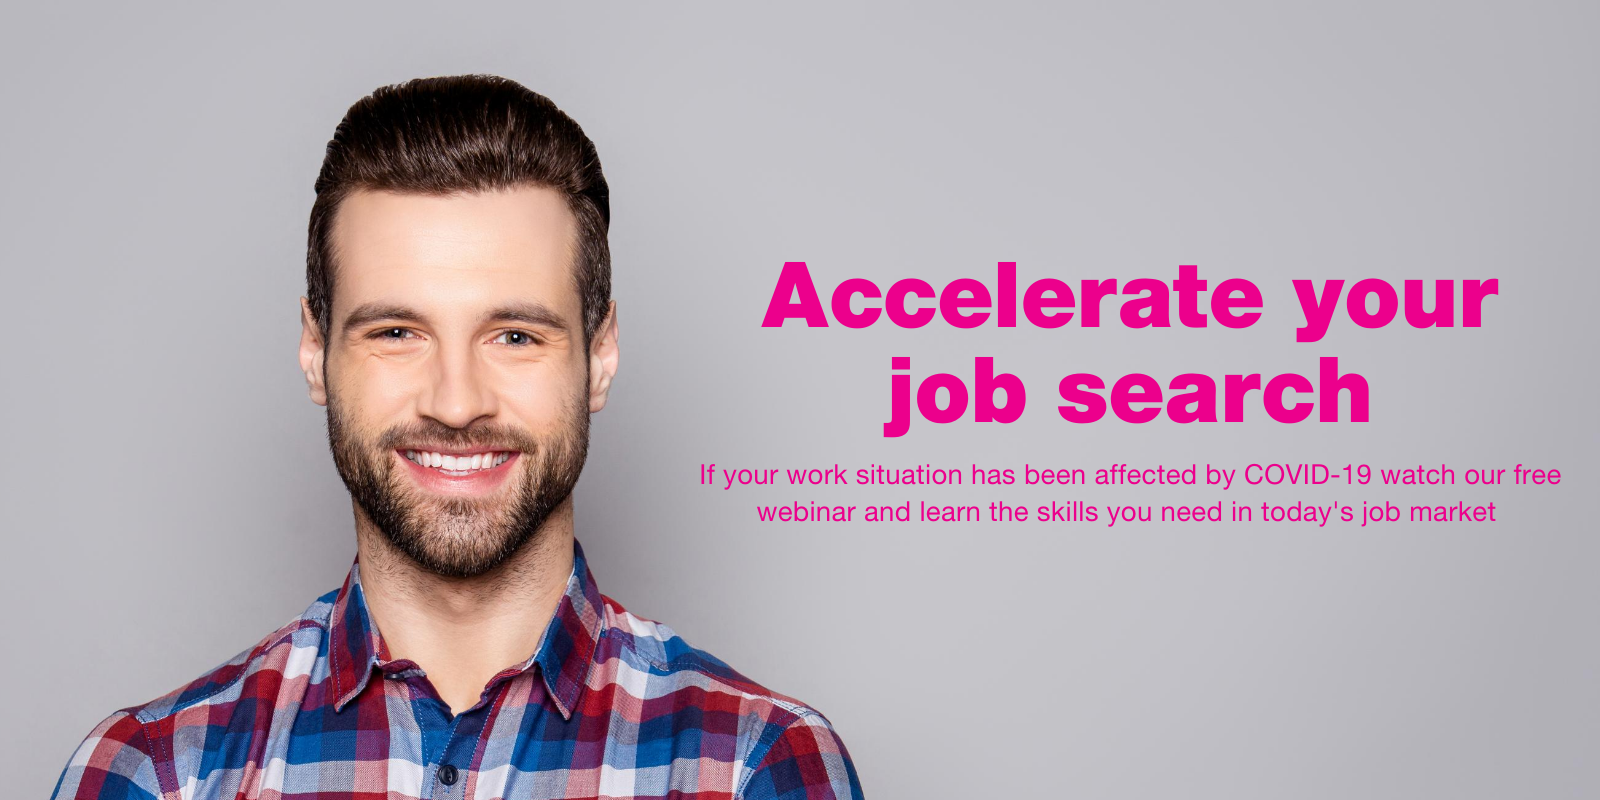 Job Search and Career Acceleration webinar